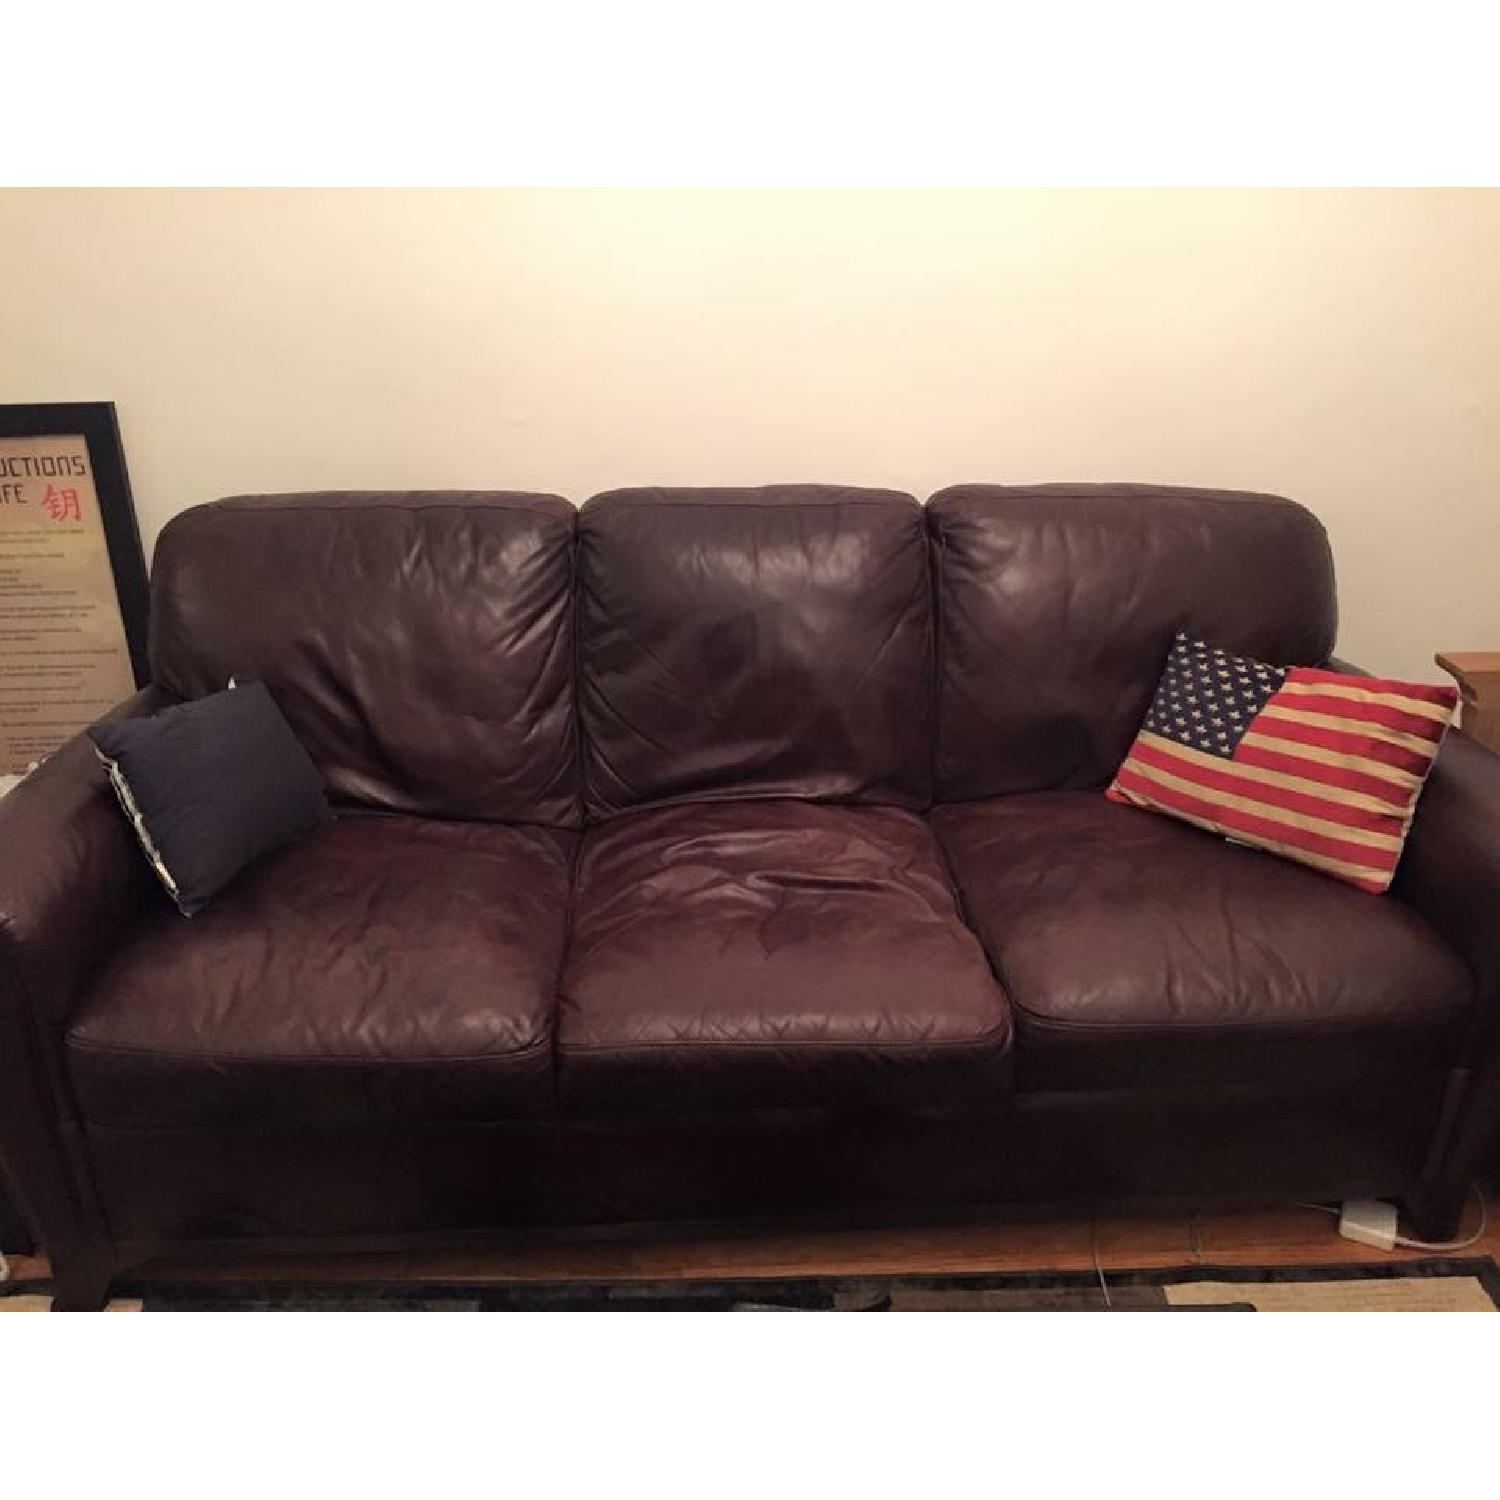 Raymour & Flanigan Jackson Leather Couch - image-1